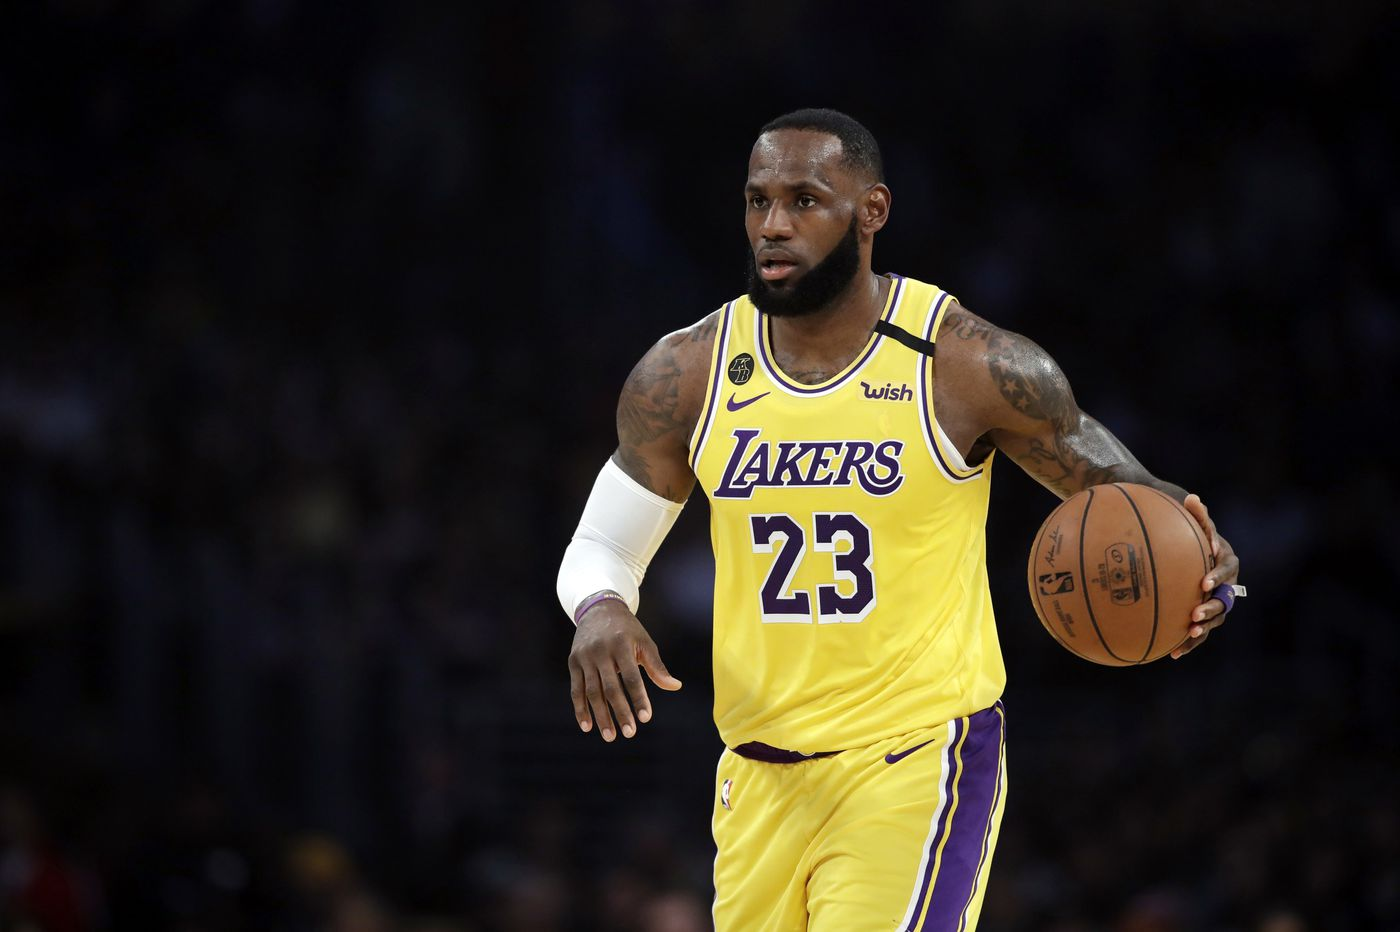 LeBron James leads sports' call for arrest of Breonna Taylor's killers, Jamal Adams says Jets coach Adam Gase isn't a leader, and other sports news